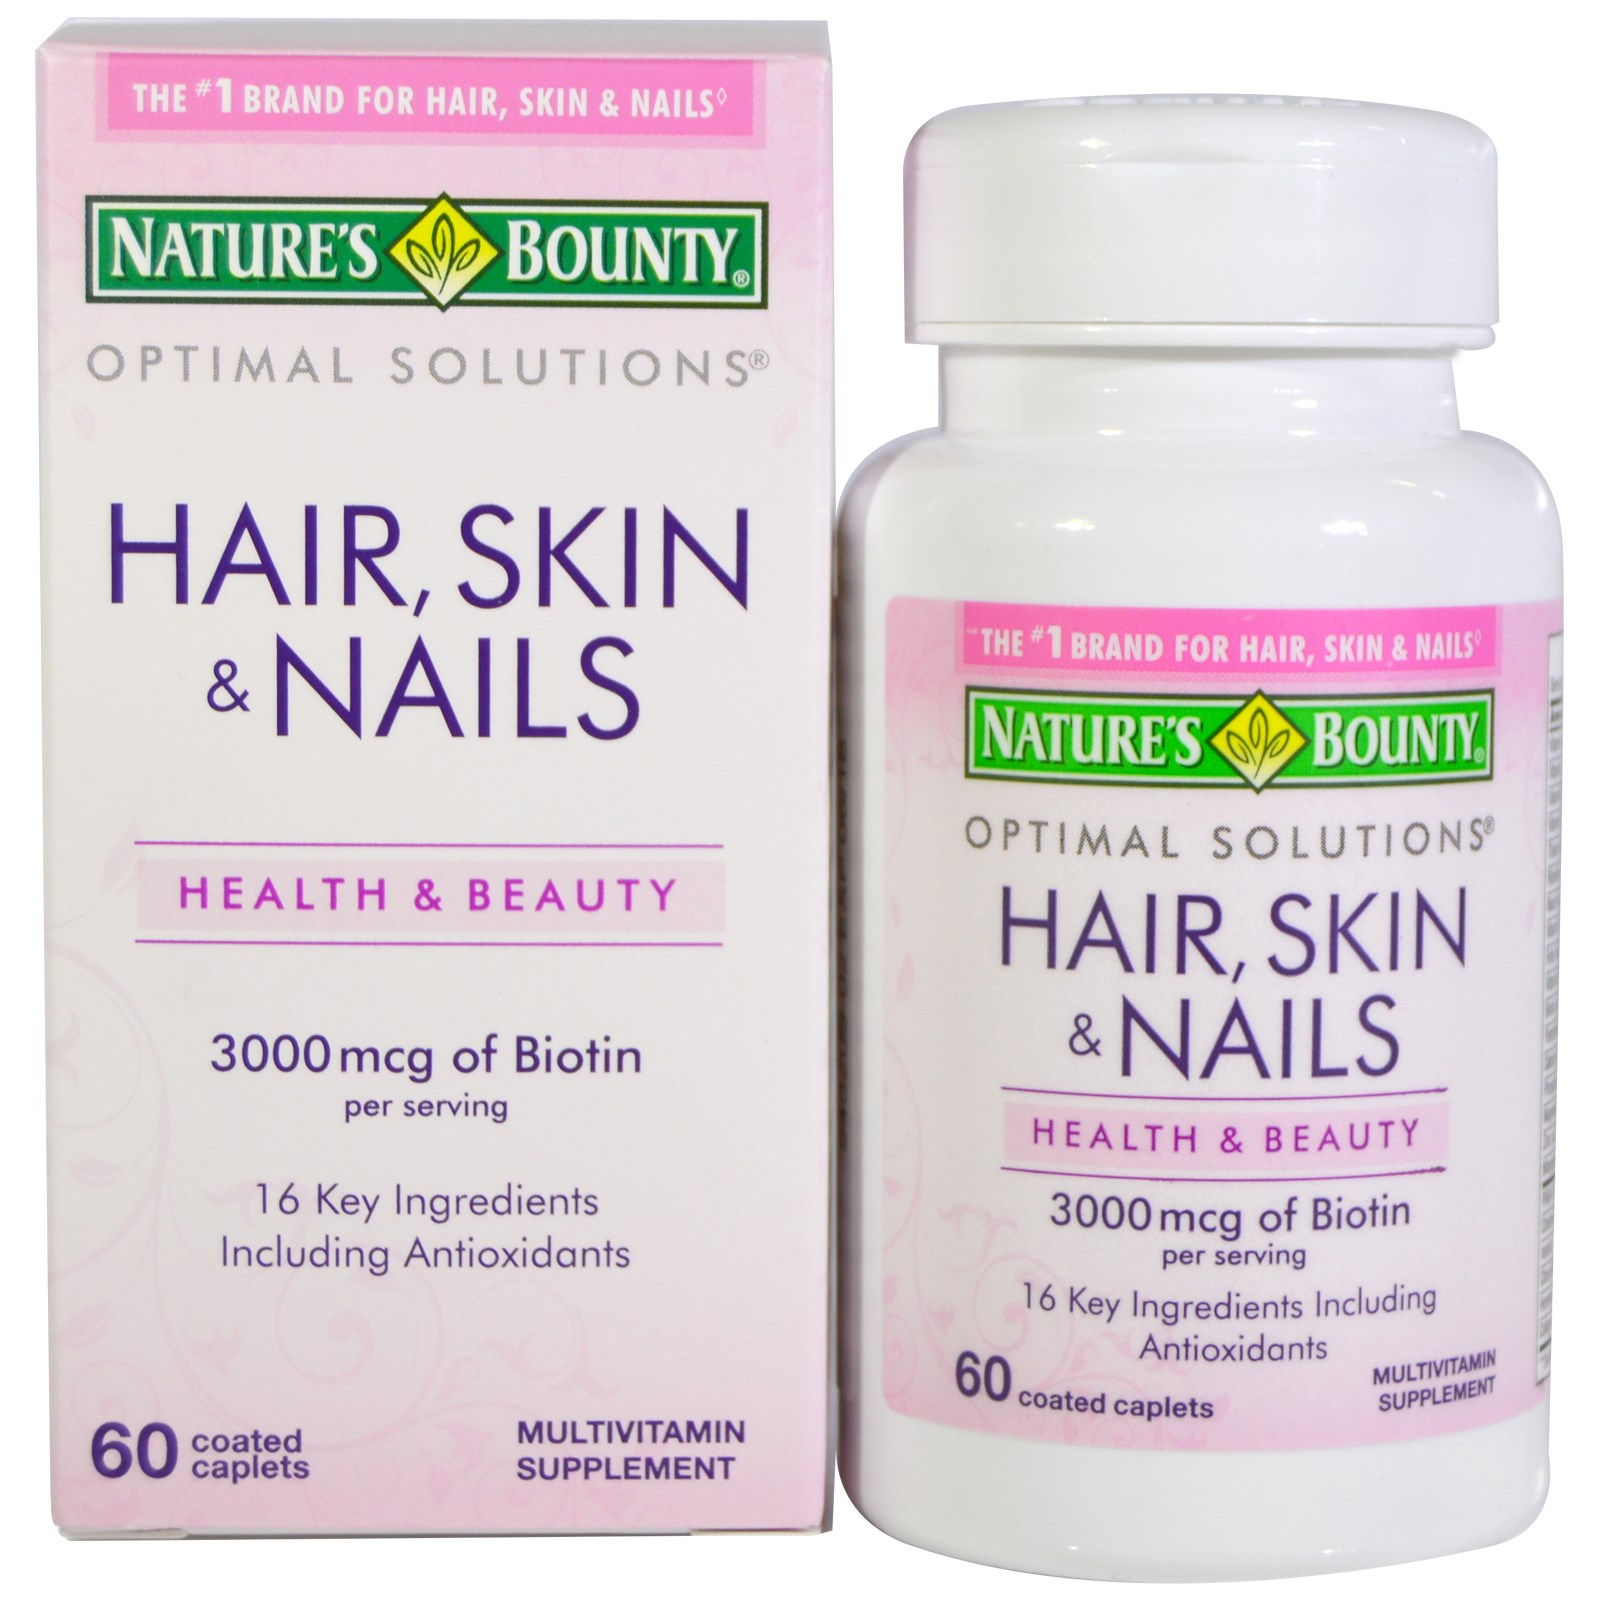 Natures Bounty Hair Skin Nails 60 Coated Caplets